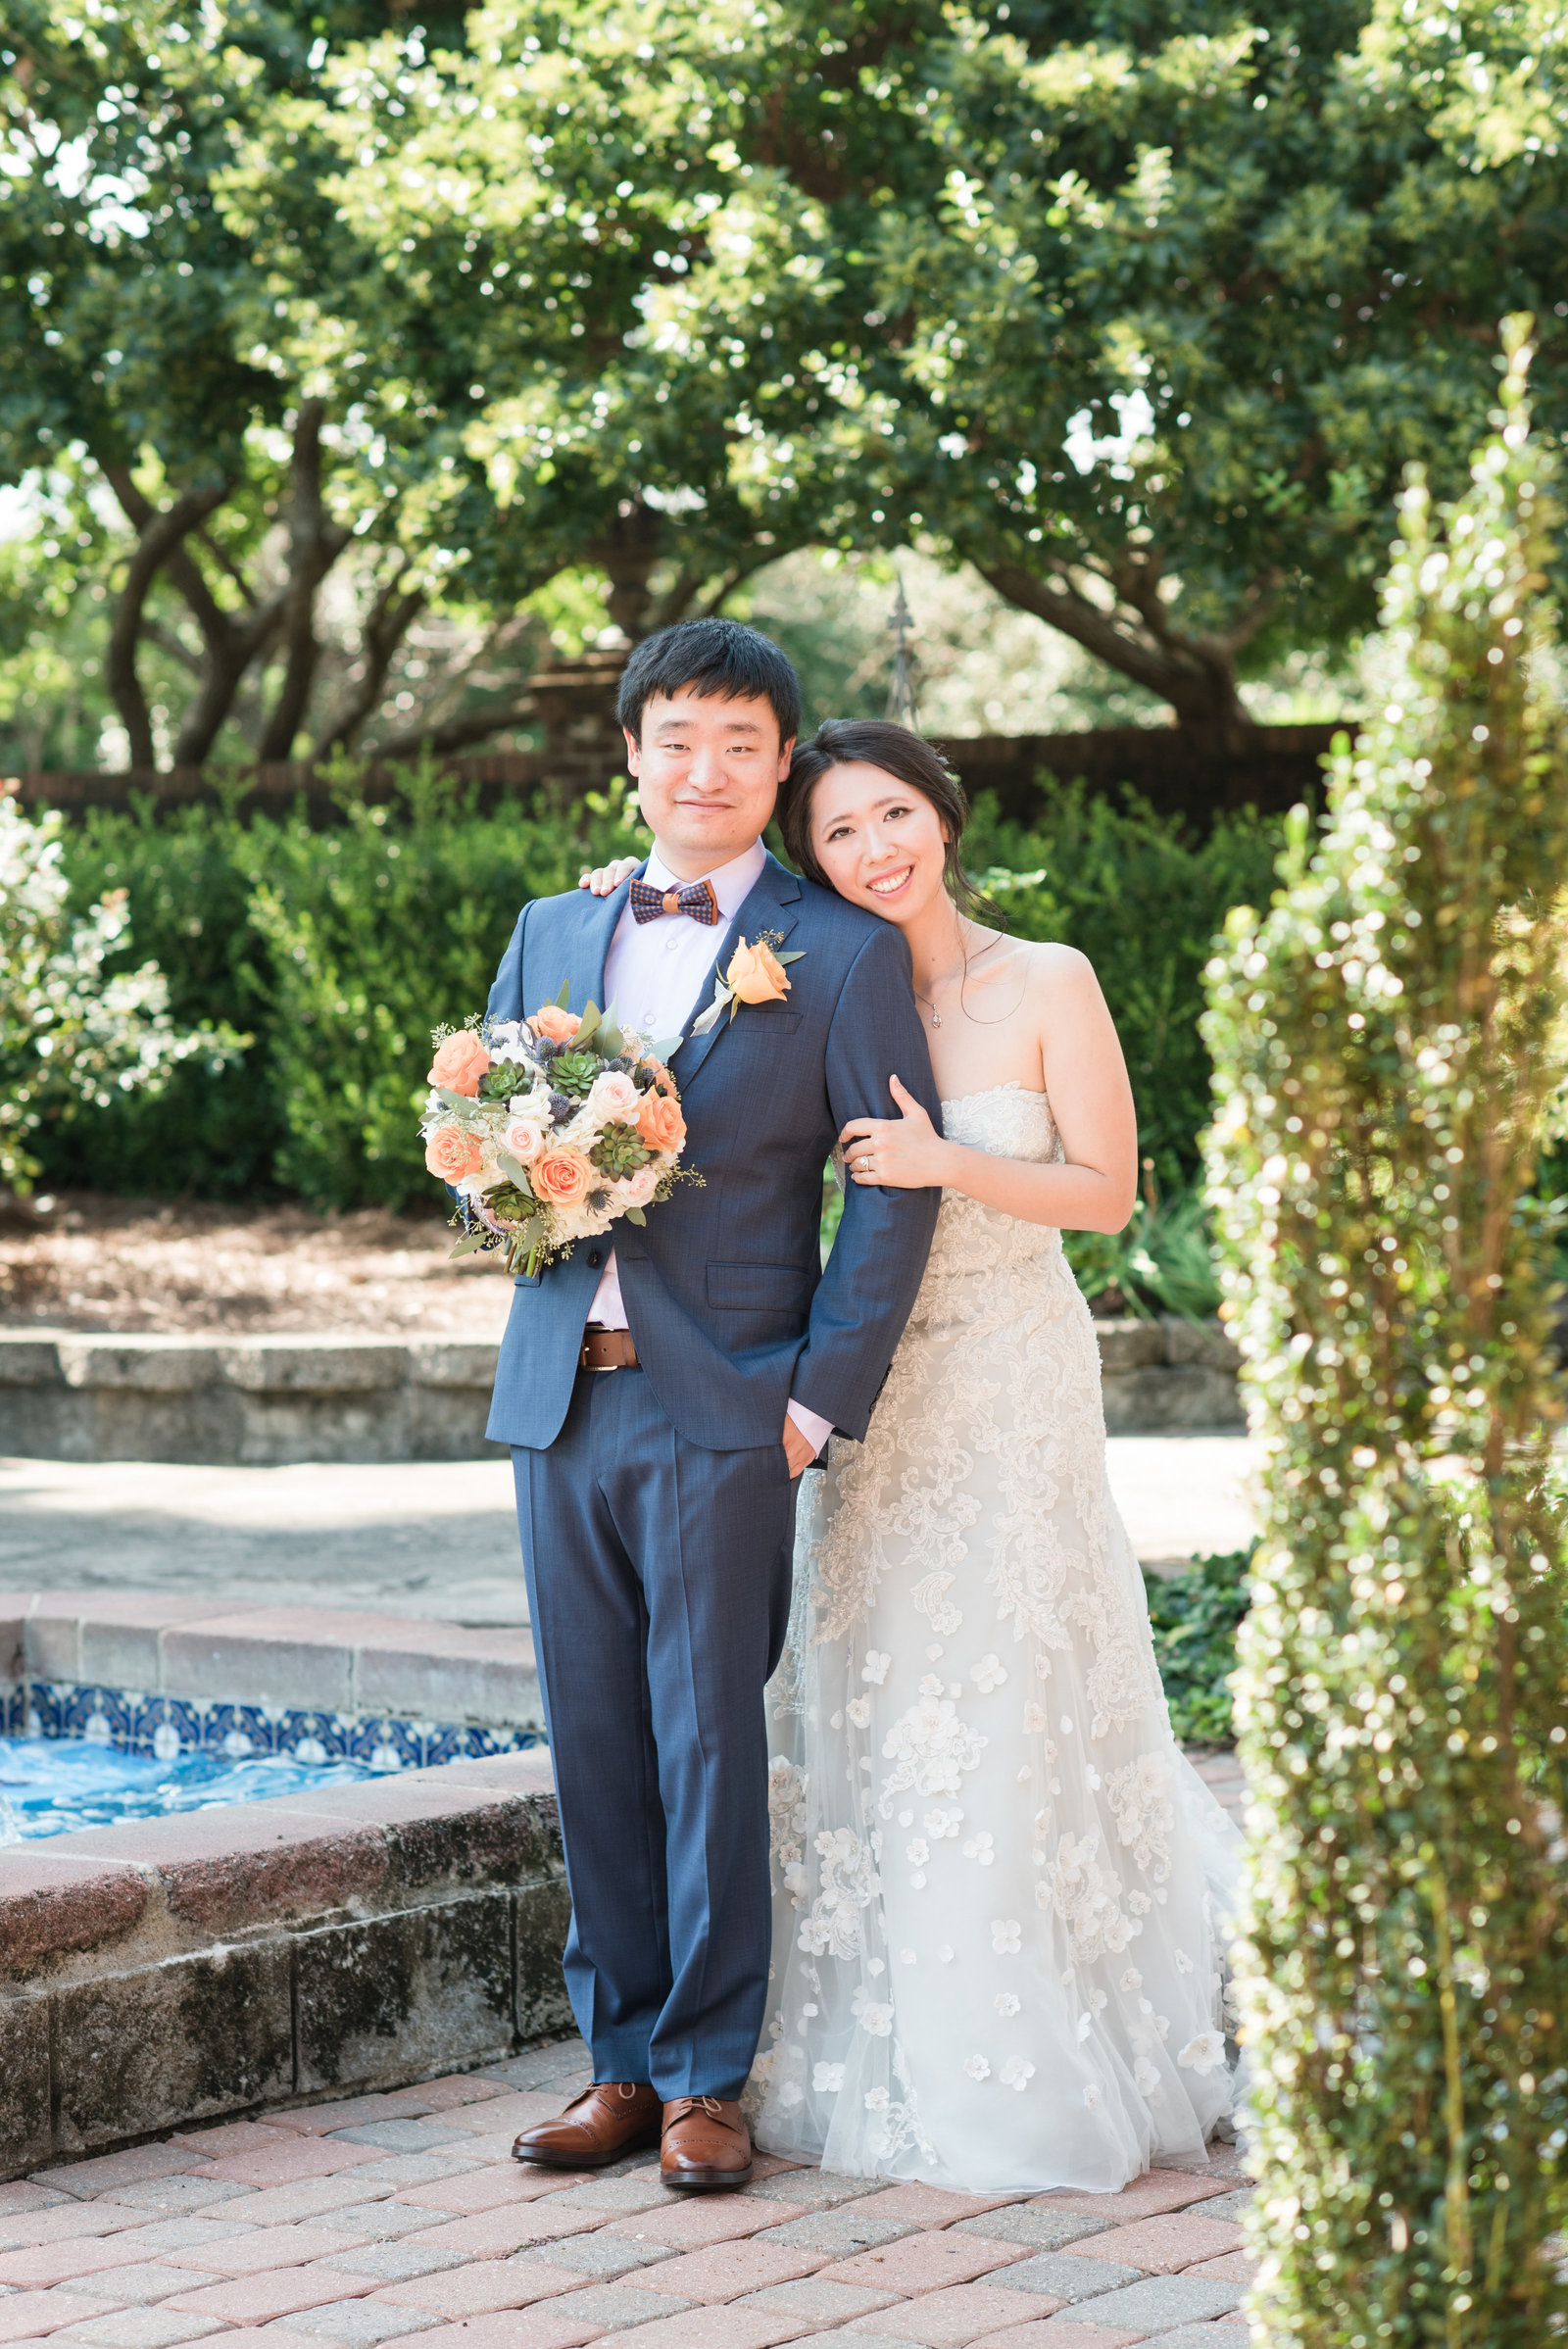 bride wearing a light blue wedding dress  smiling looking at the camera holding on to her groom wearing a navy blue suite smiling at the camera while holding a multi colored wedding bouquet at Barclay Villa